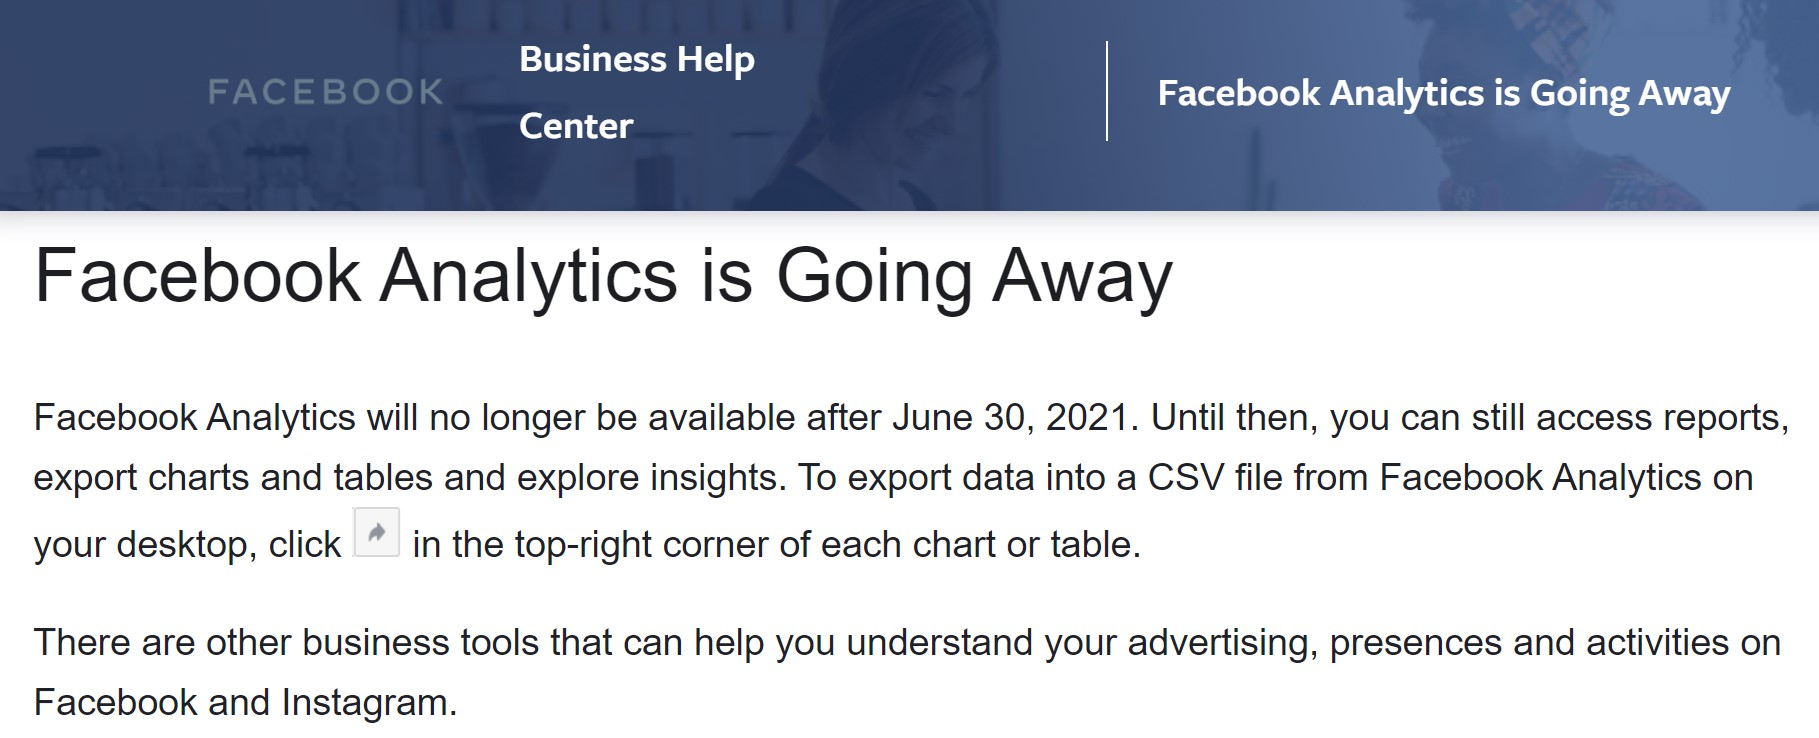 Facebook Analytics is Going Away by 30 June 2021